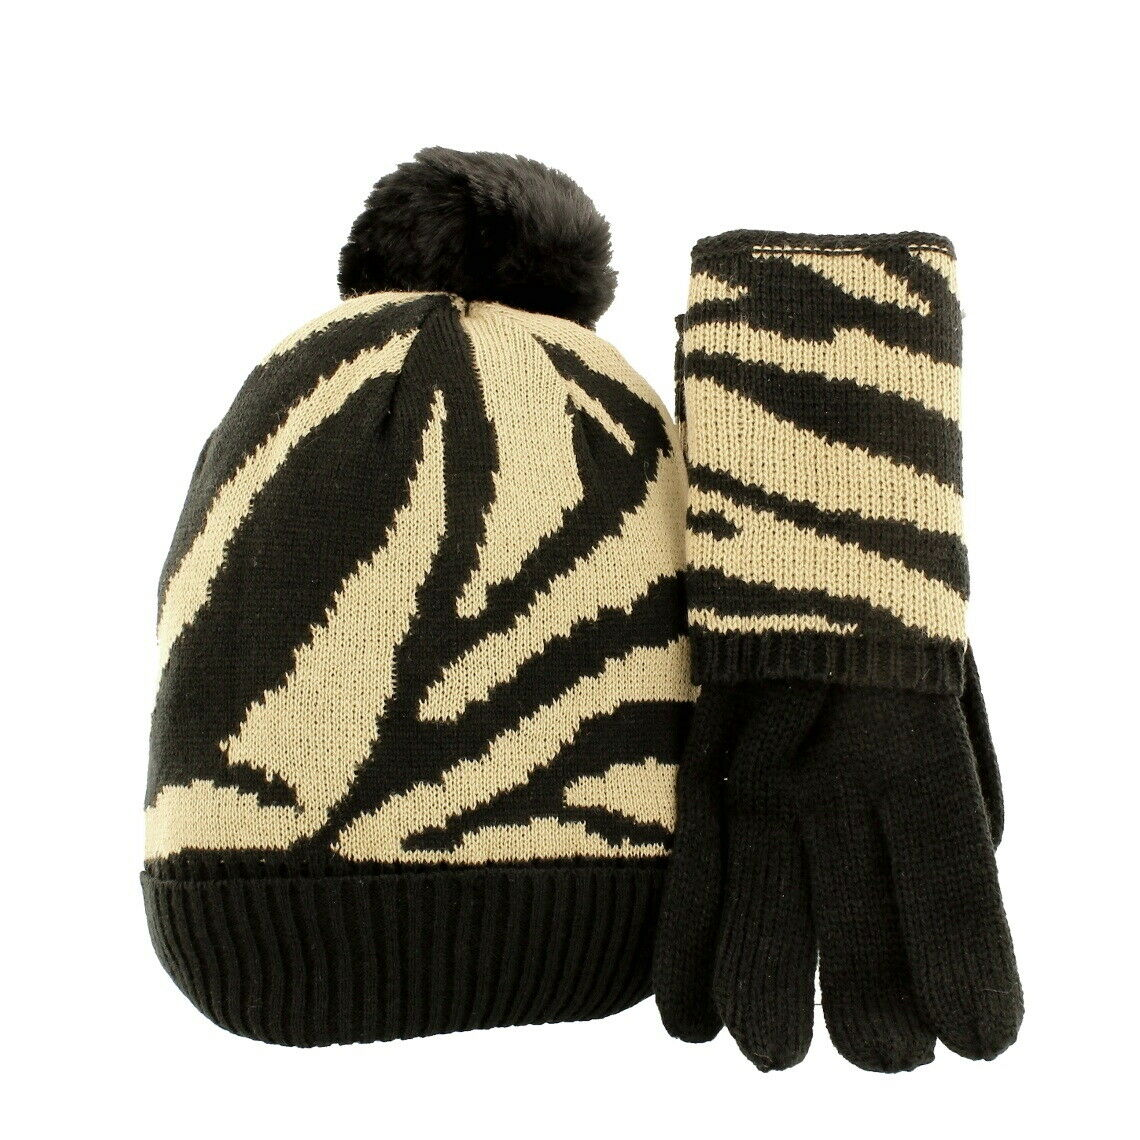 Pia Rossini Alessia Matching Bobble Hat & Gloves Set